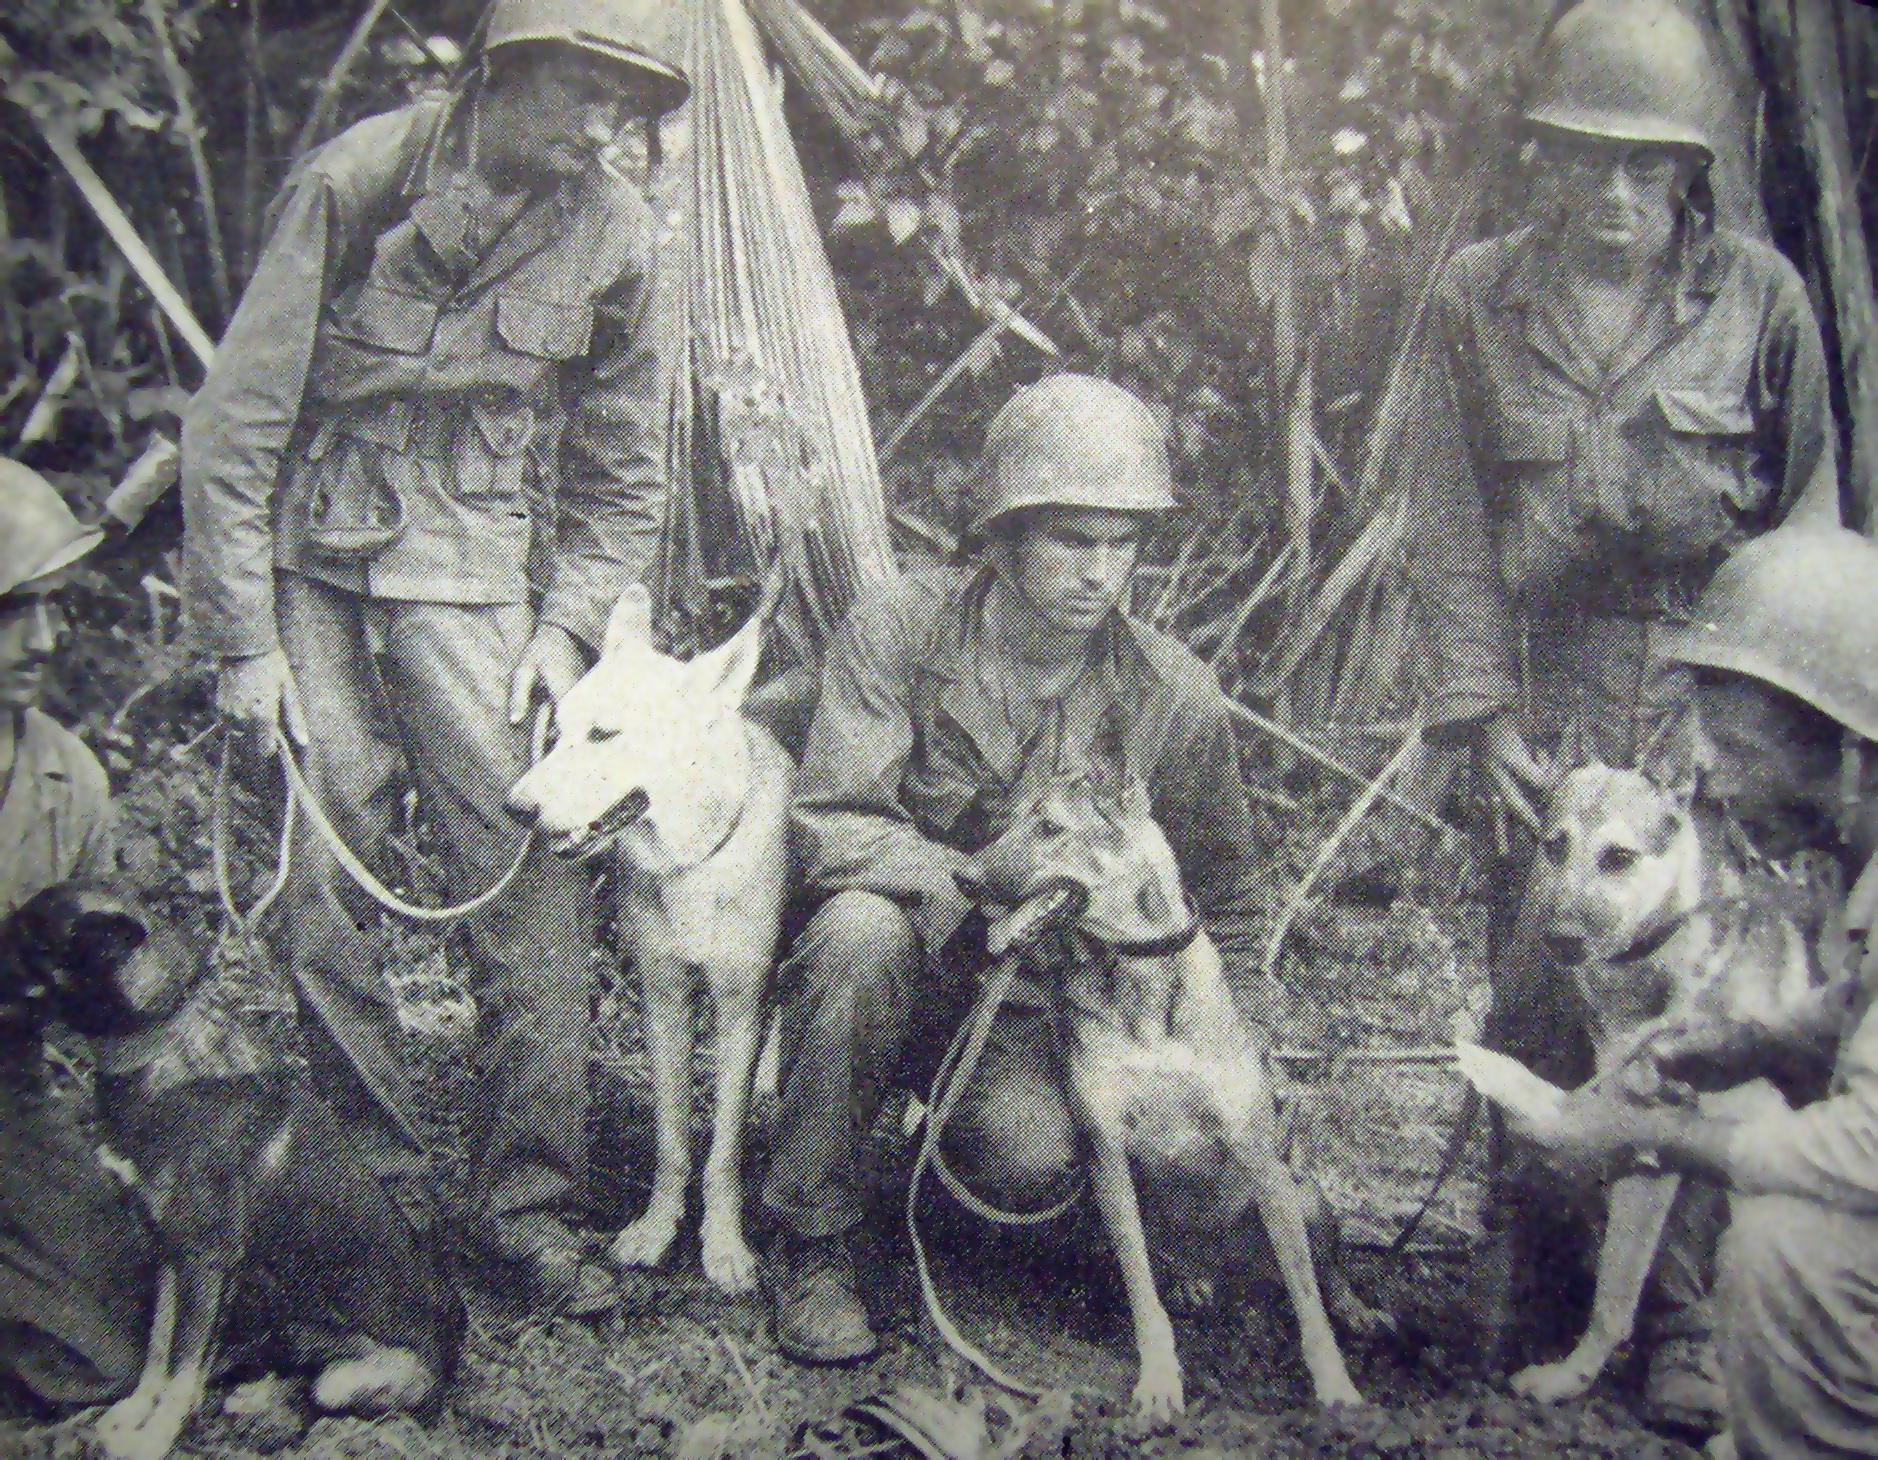 One of the first scout dog patrols to be used on Luzon in WWII. Briefing prior to a patrol (US Army photo)